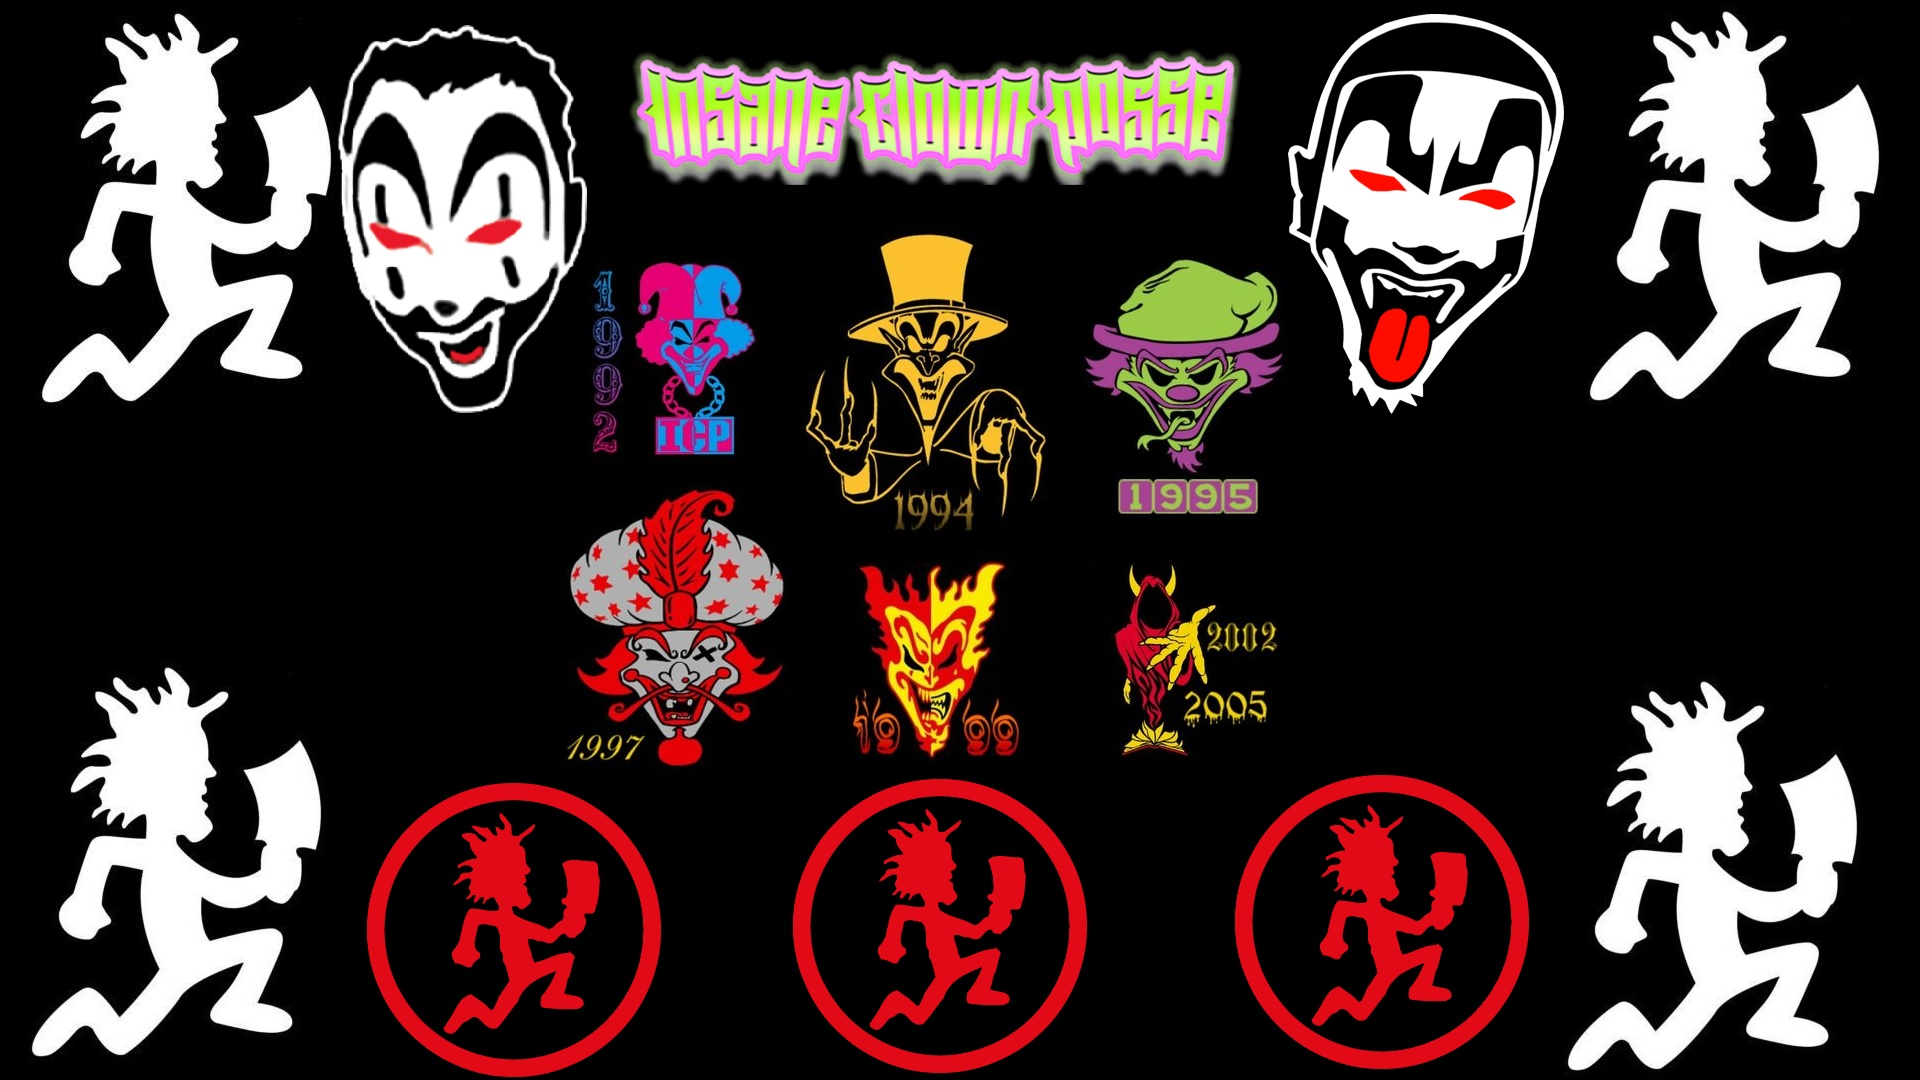 insane clown posse dating game free download